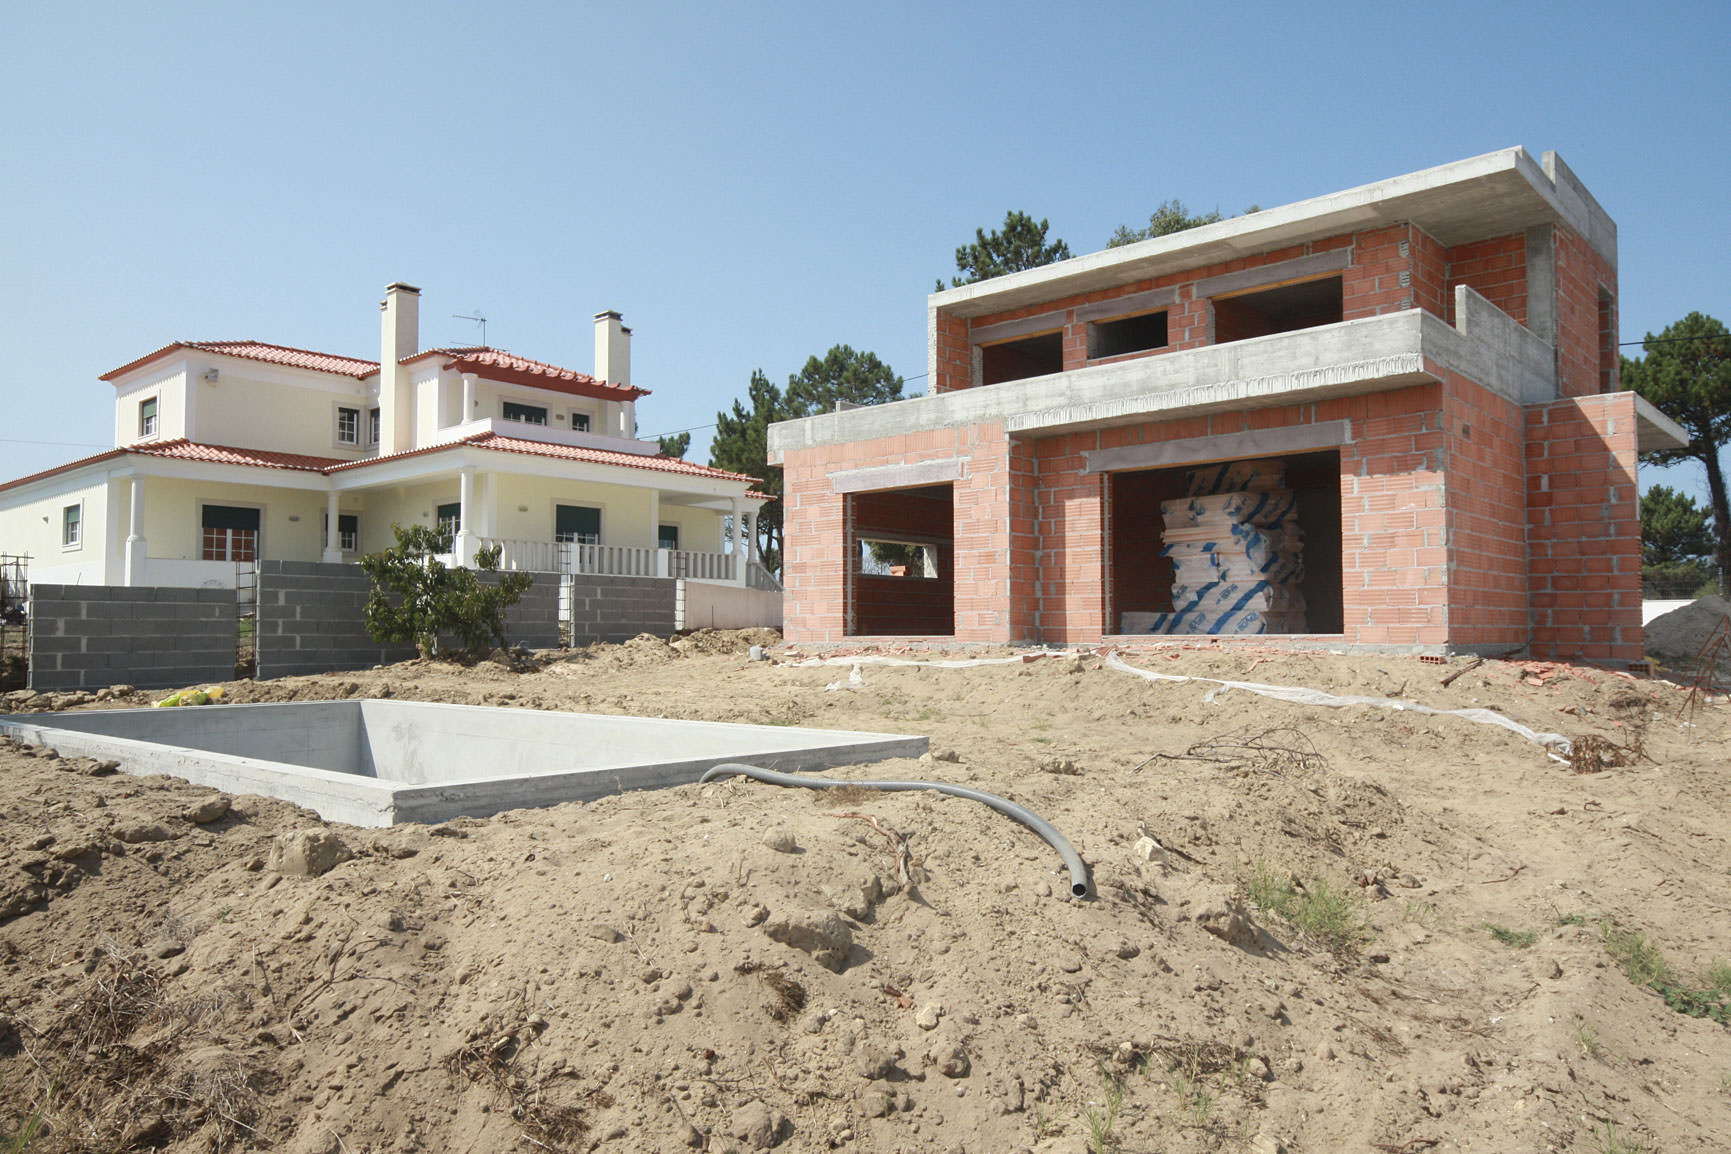 13-portugal-realty-silver-coast-property-for-sale-presprop-contsruction-new-build